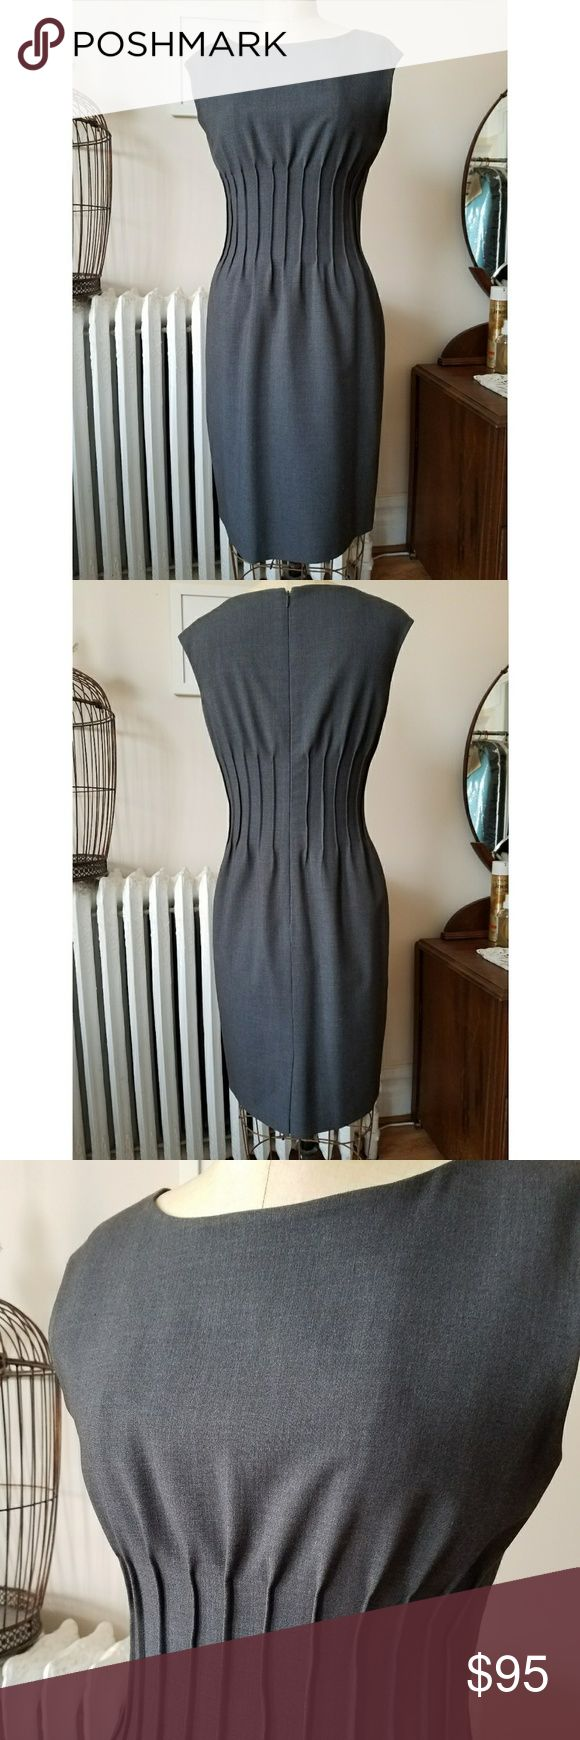 """Calvin Klein Grey Work Dress with Pintuck Details Super smart and sophisticated. This dress takes you from the boardroom to after work drinks with the change of jewelry. Lightweight rayon blend looks like grey flannel. Fully lined. Pintucks give you a flattering shape! Size 6. Terrific condition. Bust=36"""" waist=30"""" Hip=39/40"""" Calvin Klein Dresses Midi"""